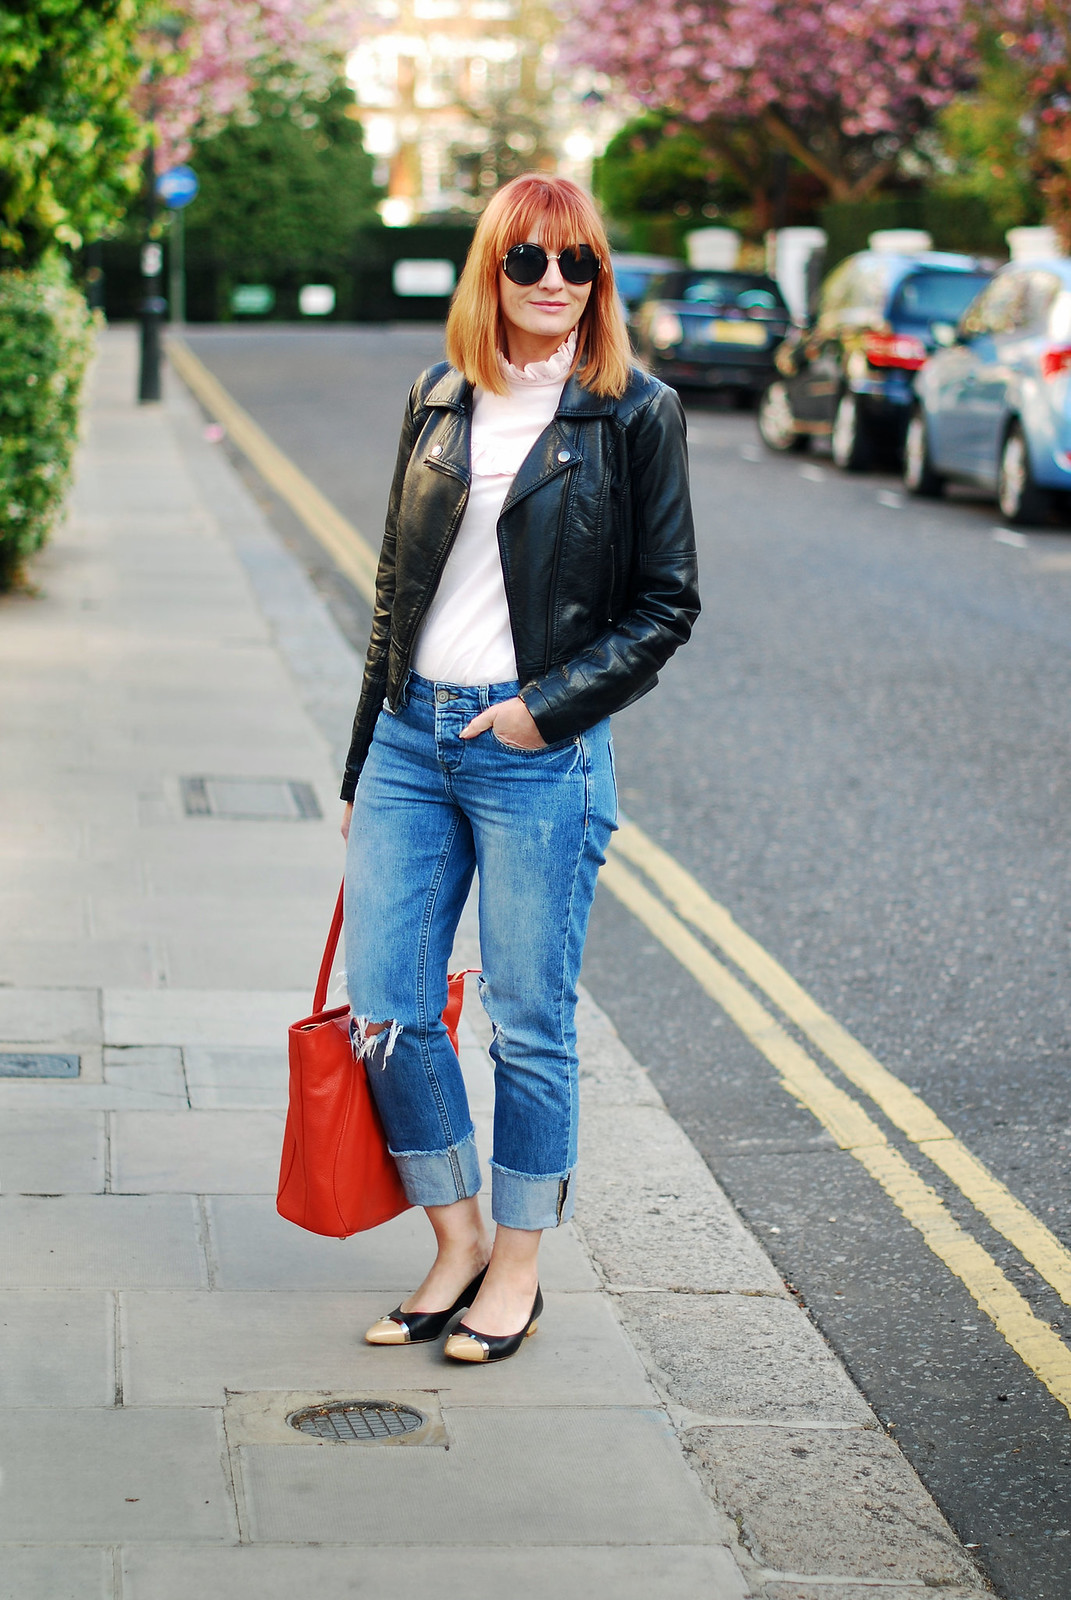 SS16 Style: M&S Archive by Alexa ruffled Harry blouse, distressed boyfriend jeans, black biker jacket, orange tote, pointed two-tone flats | Not Dressed As Lamb